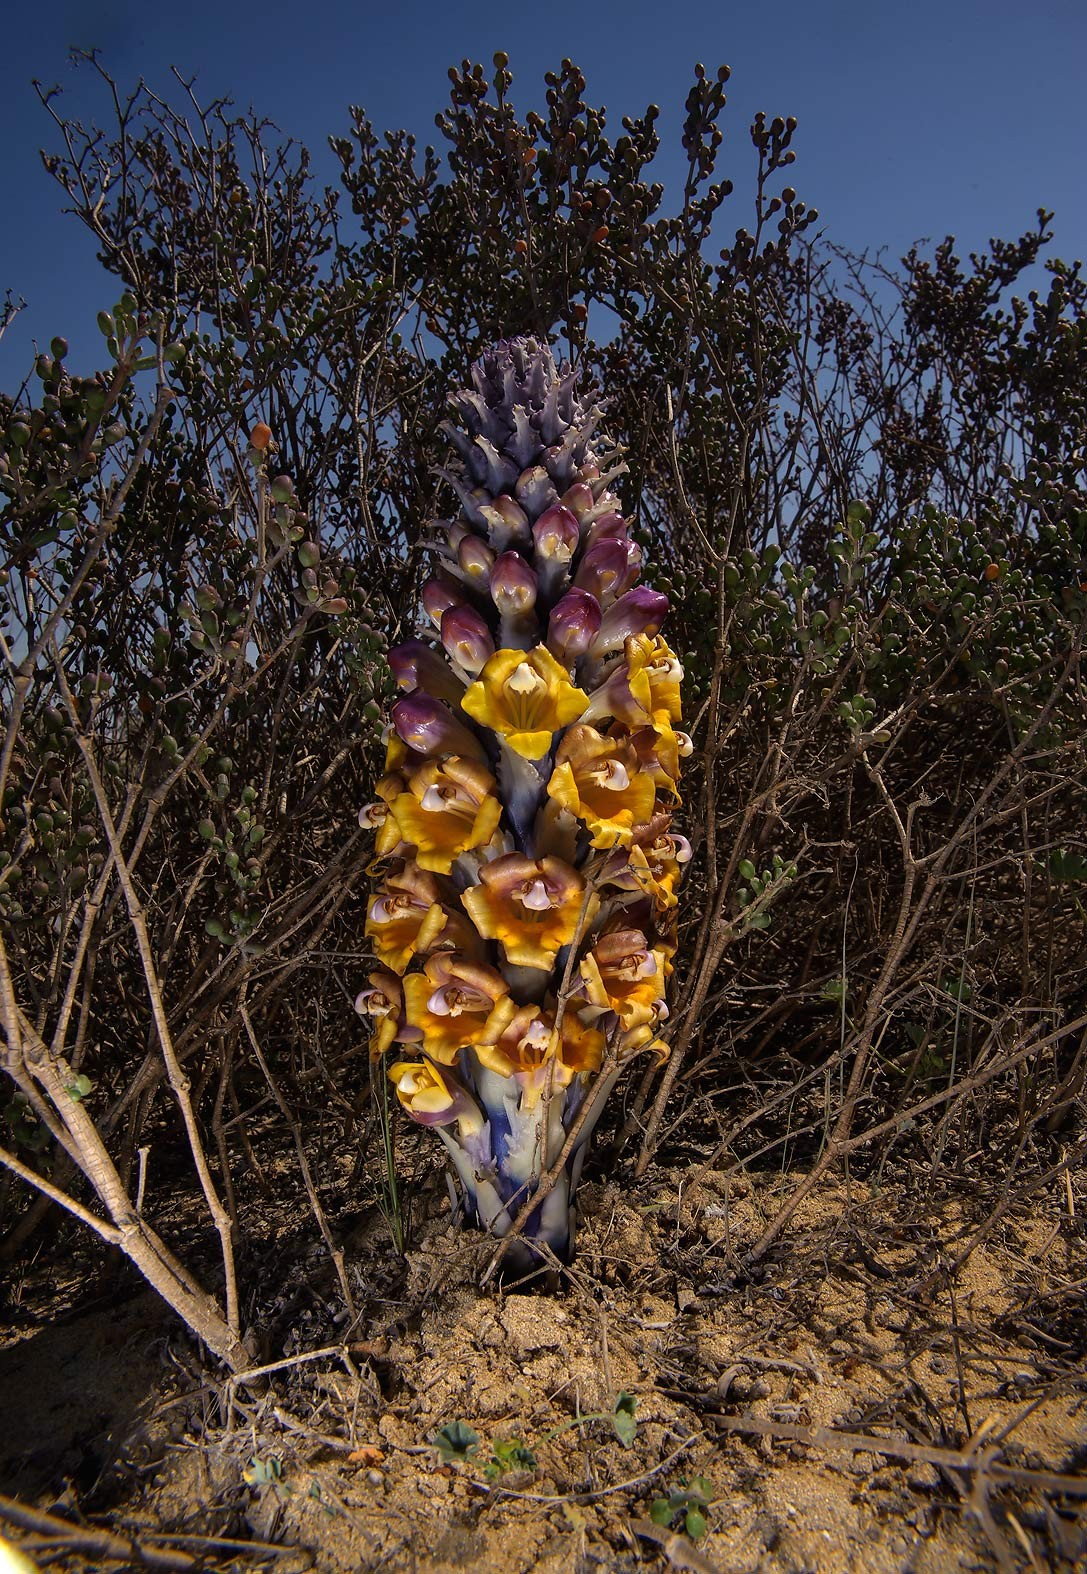 Desert Hyacinth (Cistanche tubulosa, Cistanche...of Umm Bab in south-western Qatar